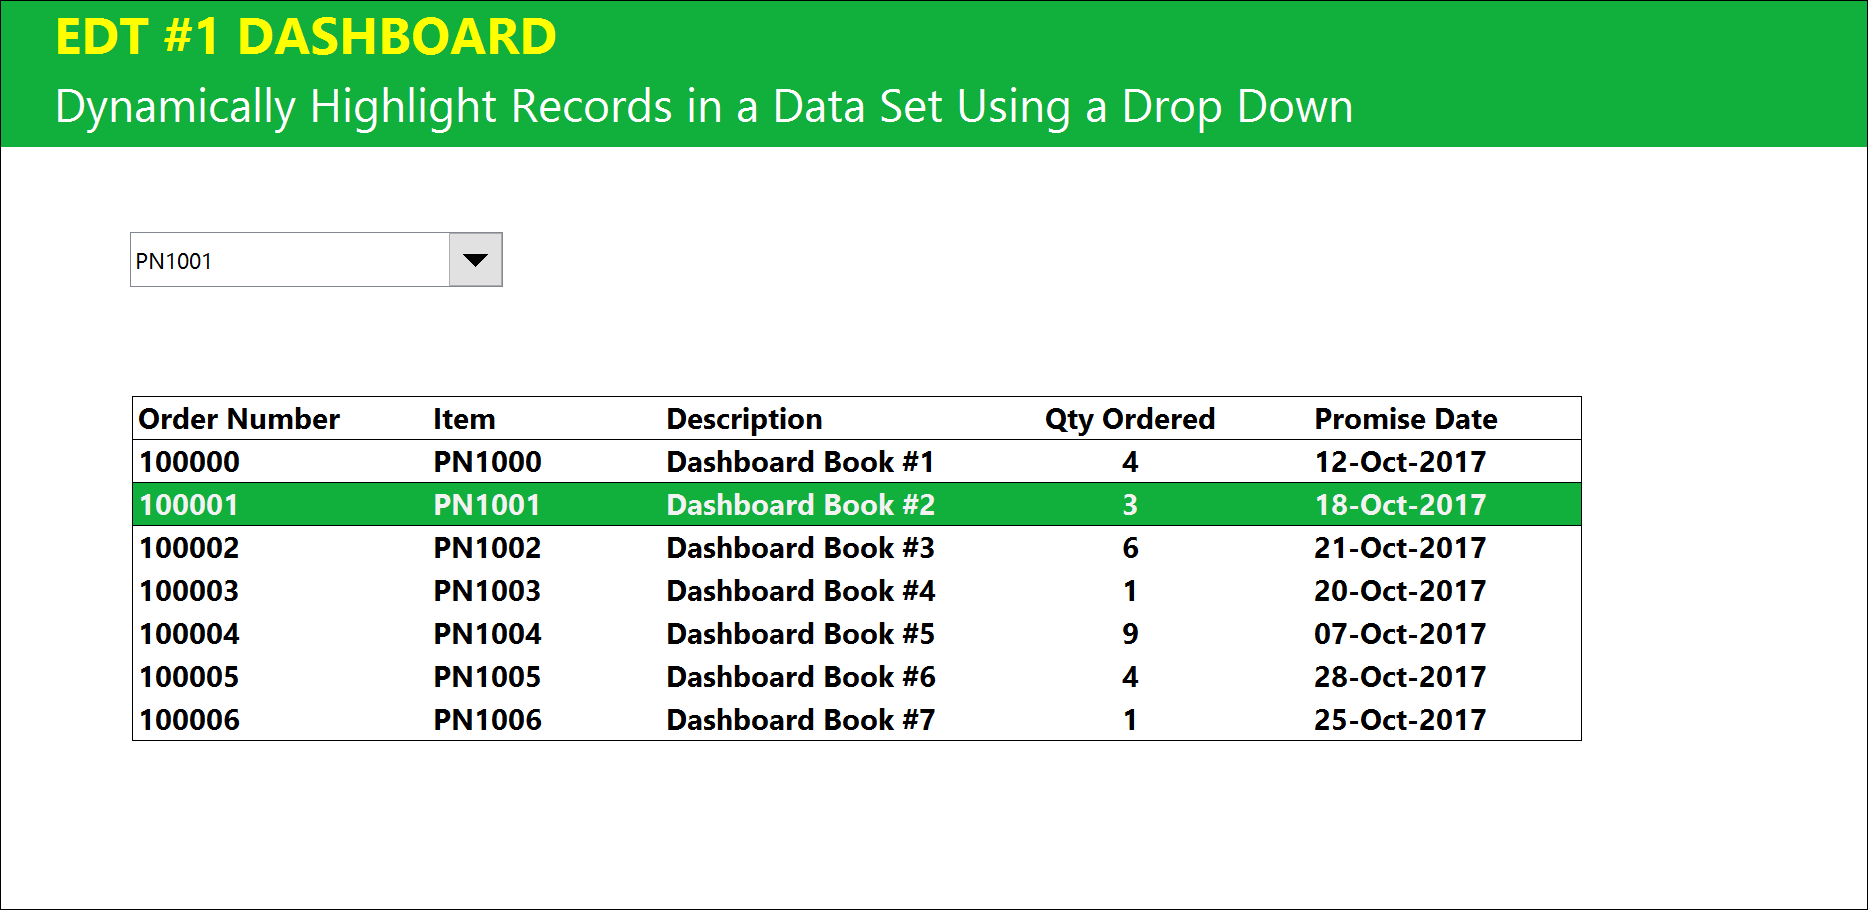 THE EXCEL DASHBOARD TOOLBOX: 5 DATA TRANSFORMATION TECHNIQUES - BRAD